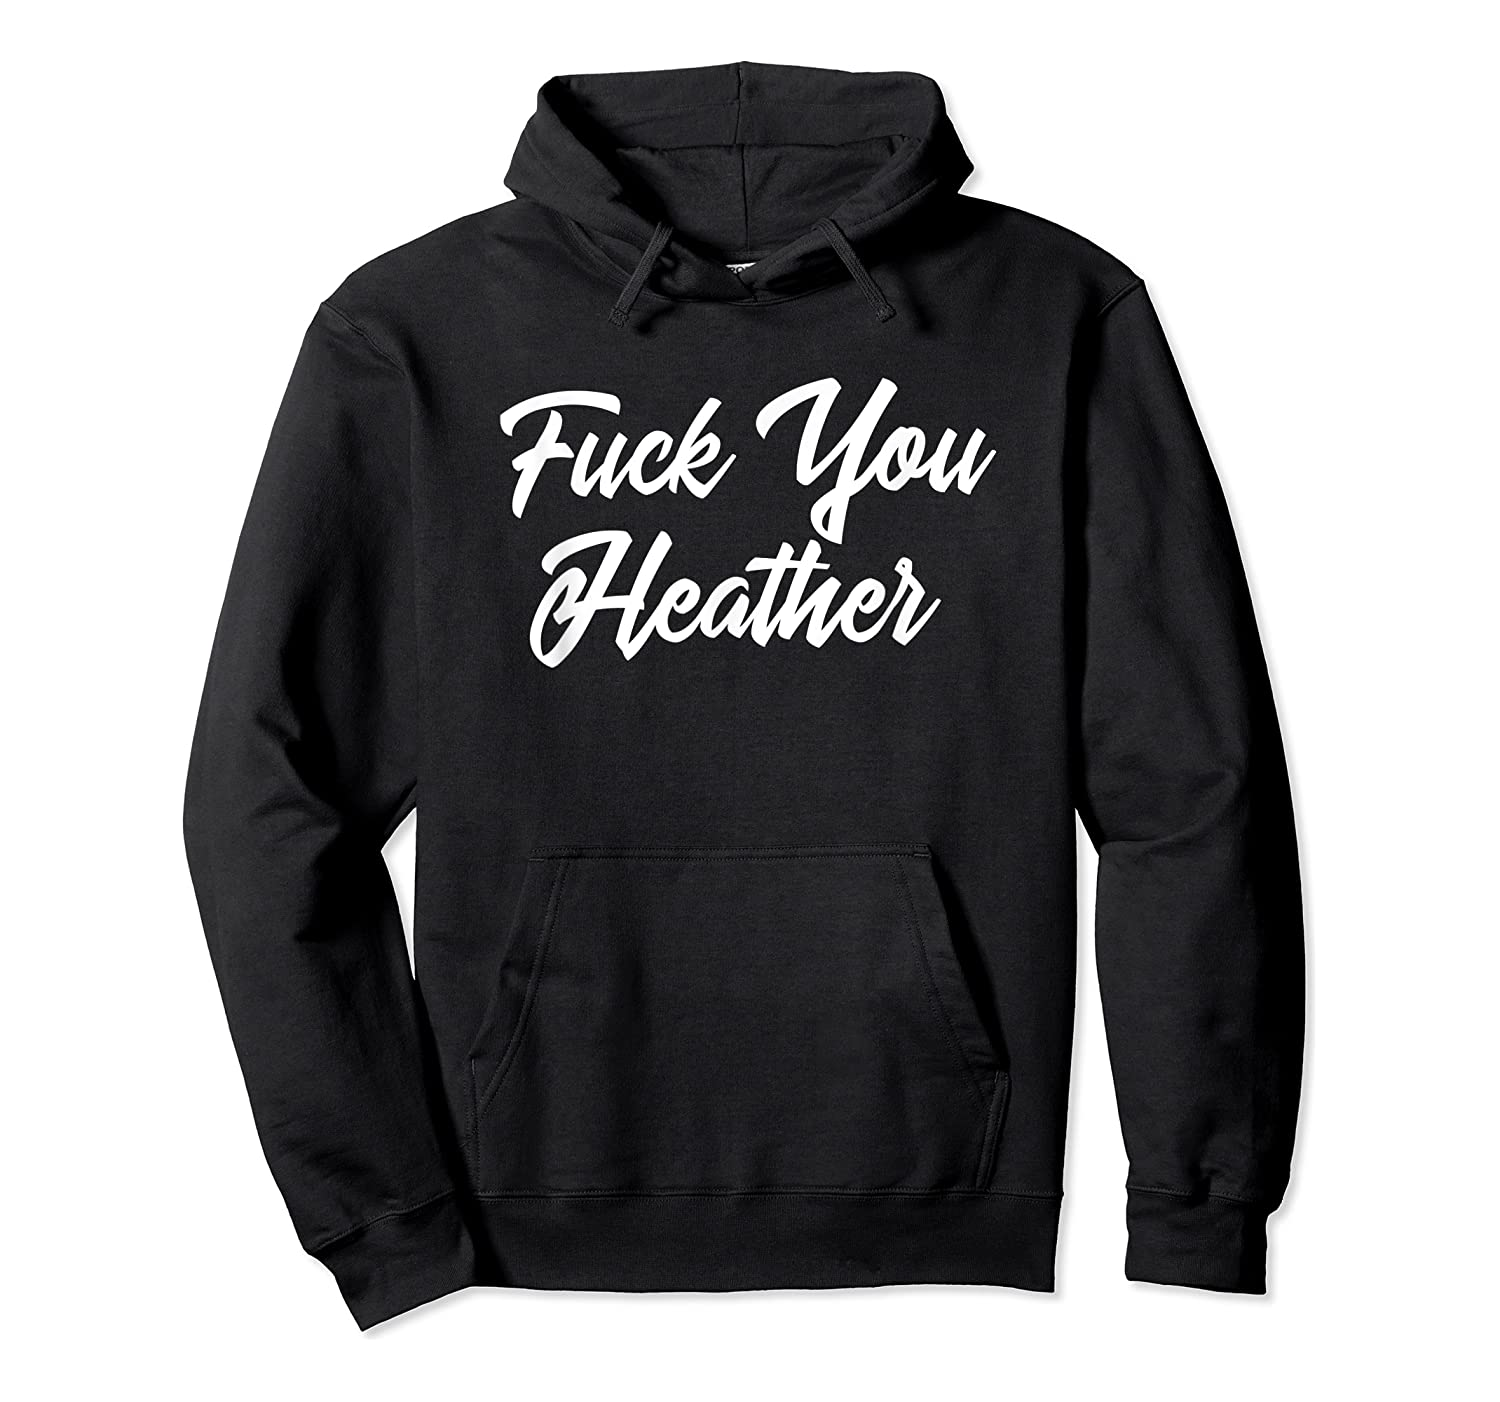 Fuck You Heather Funny Fu Joke Bachelorette Party Gag Gift Shirts Unisex Pullover Hoodie